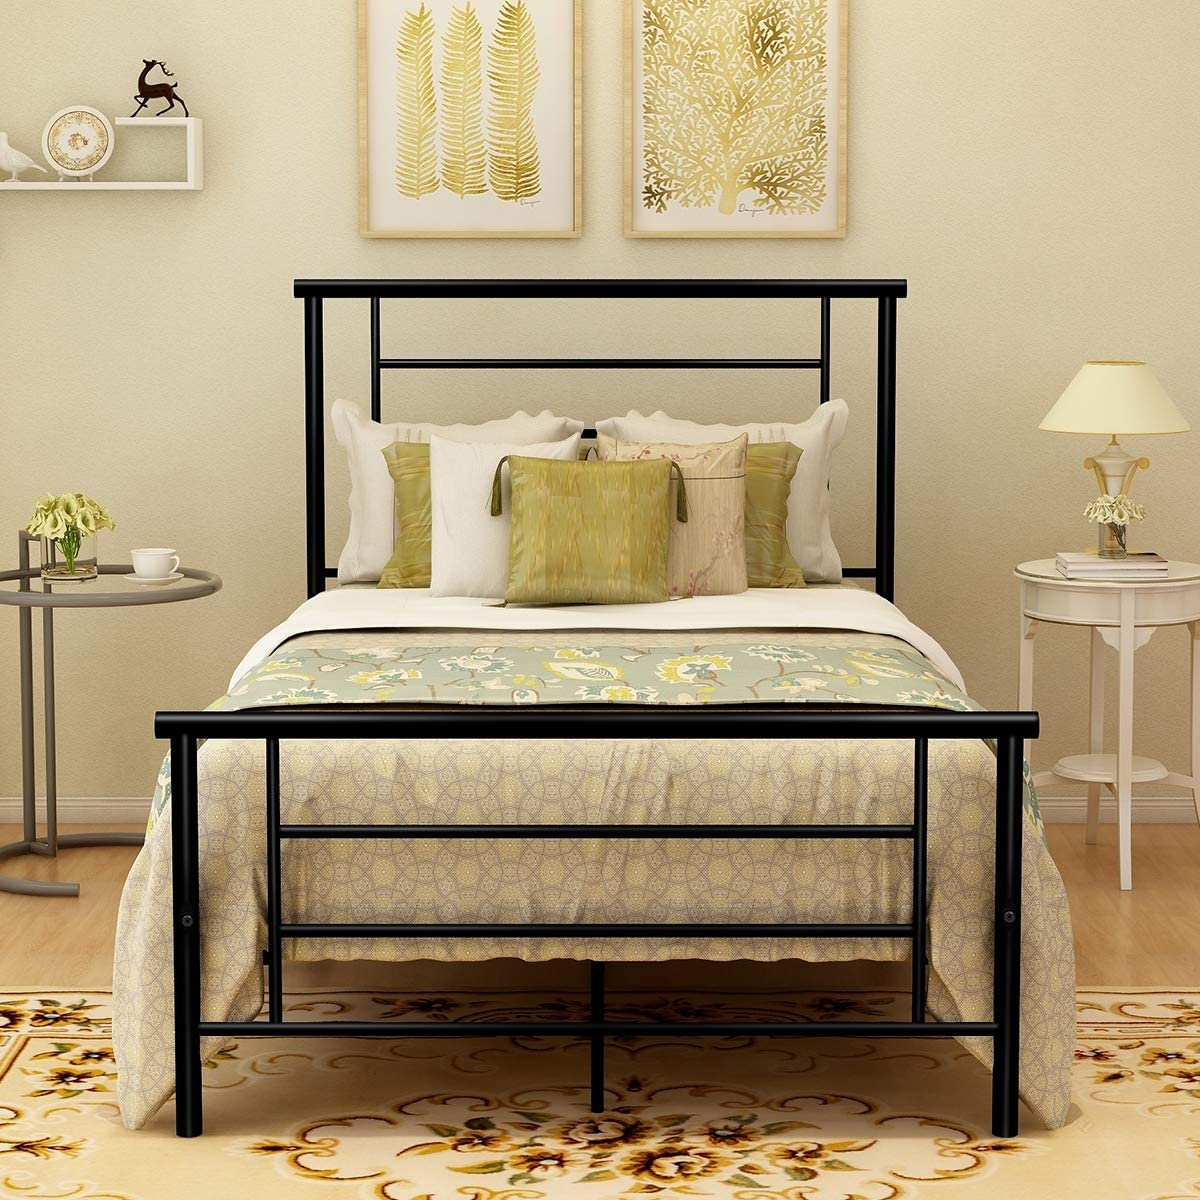 BOFENG Bed Max 56% OFF Frame Twin Size Discount mail order Storage with Footboard Headboard and